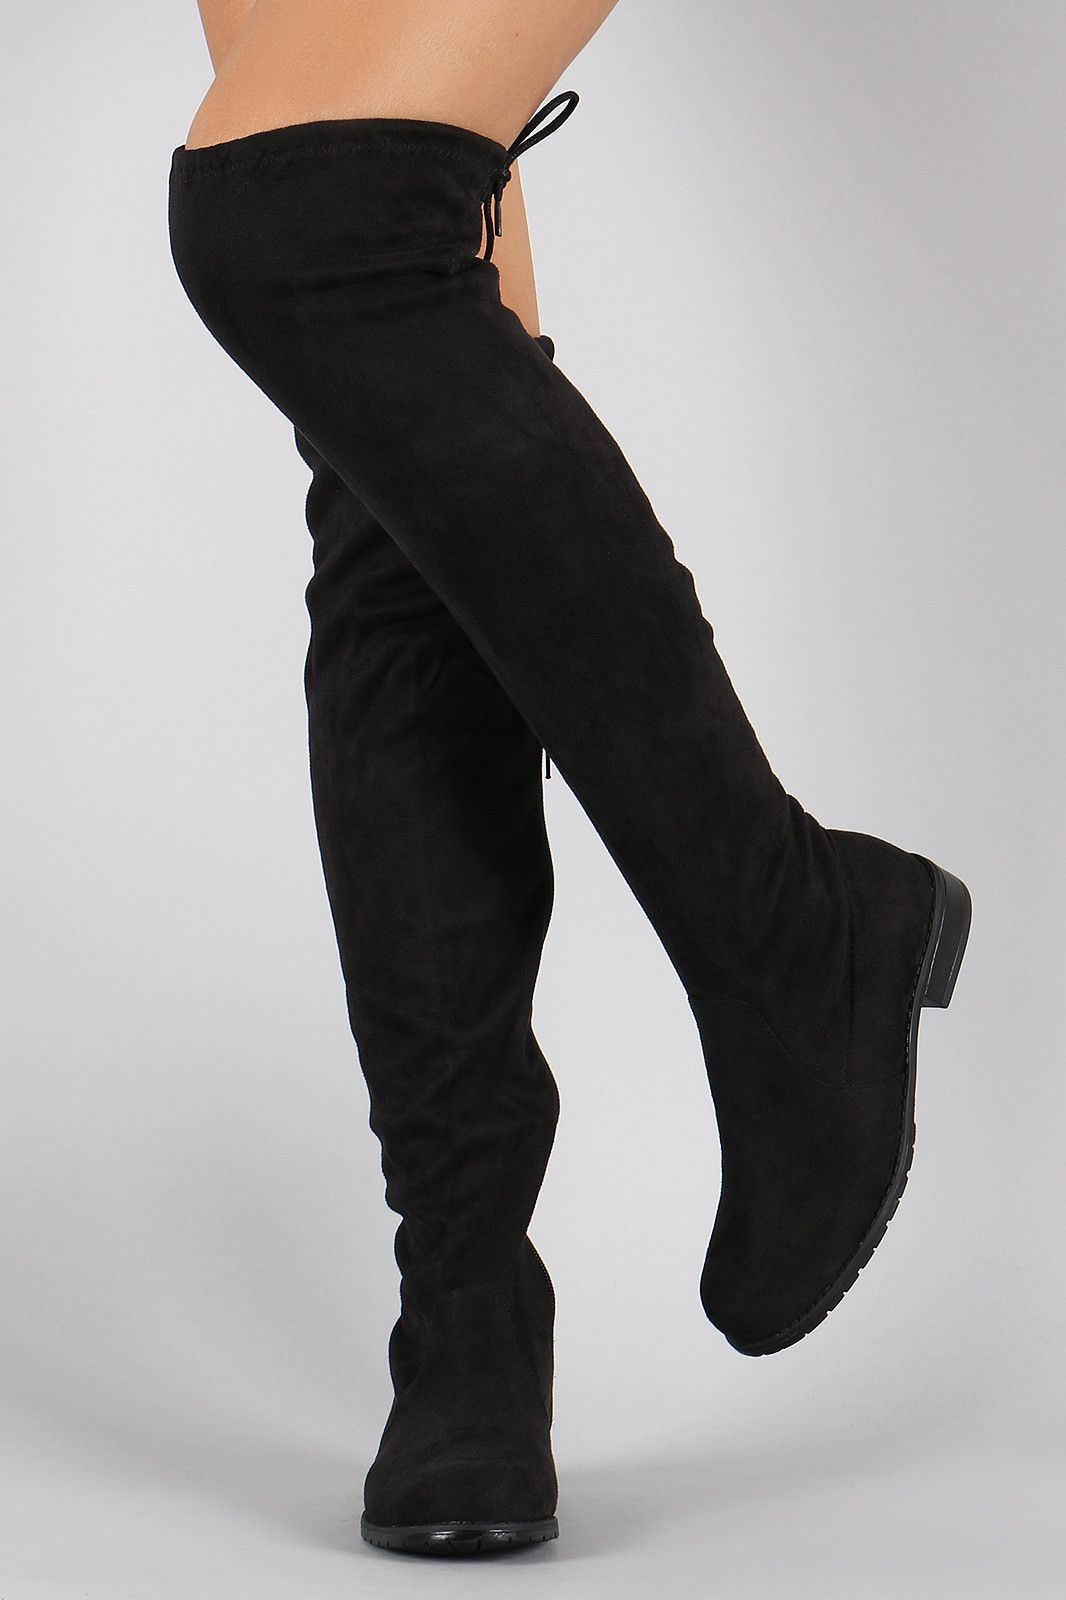 8528b24ea These over the boot s features soft vegan suede, low flat heel, round toe,  and a…